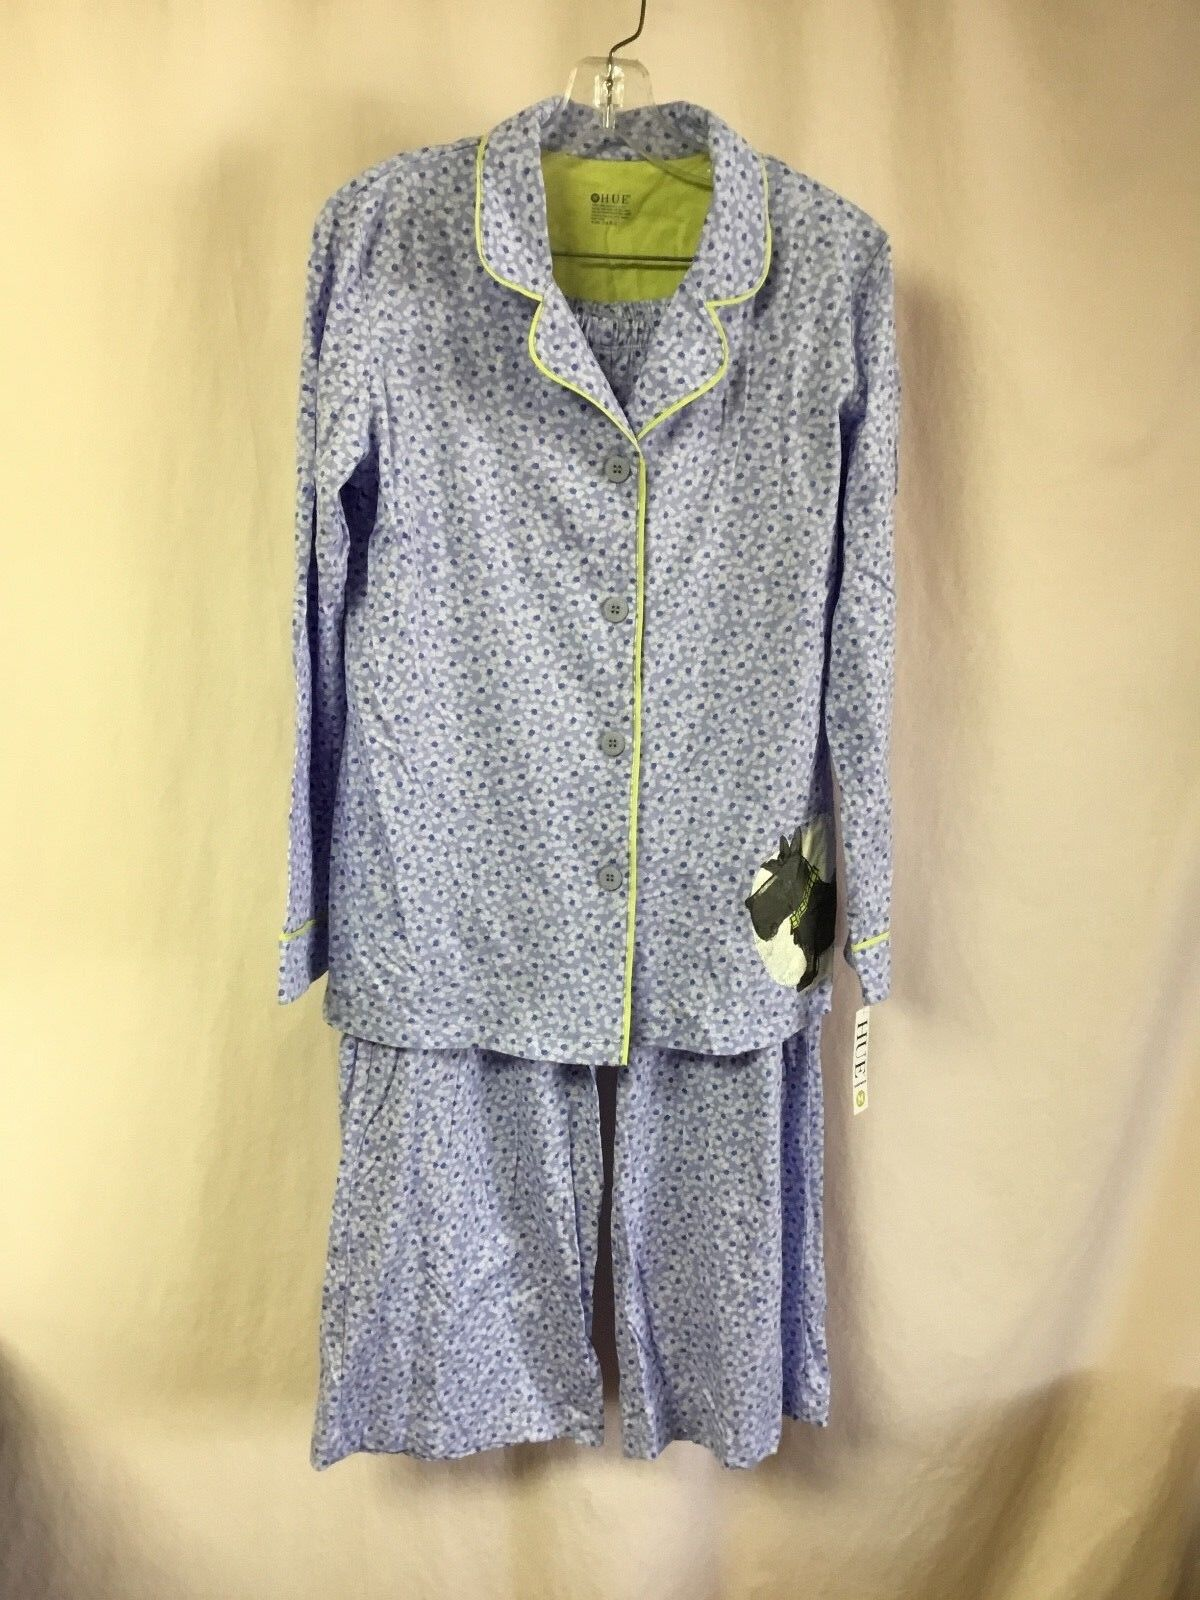 NWT Women's Hue Sleepwear 2 Piece Pajama Set Size Large Peri bluee P